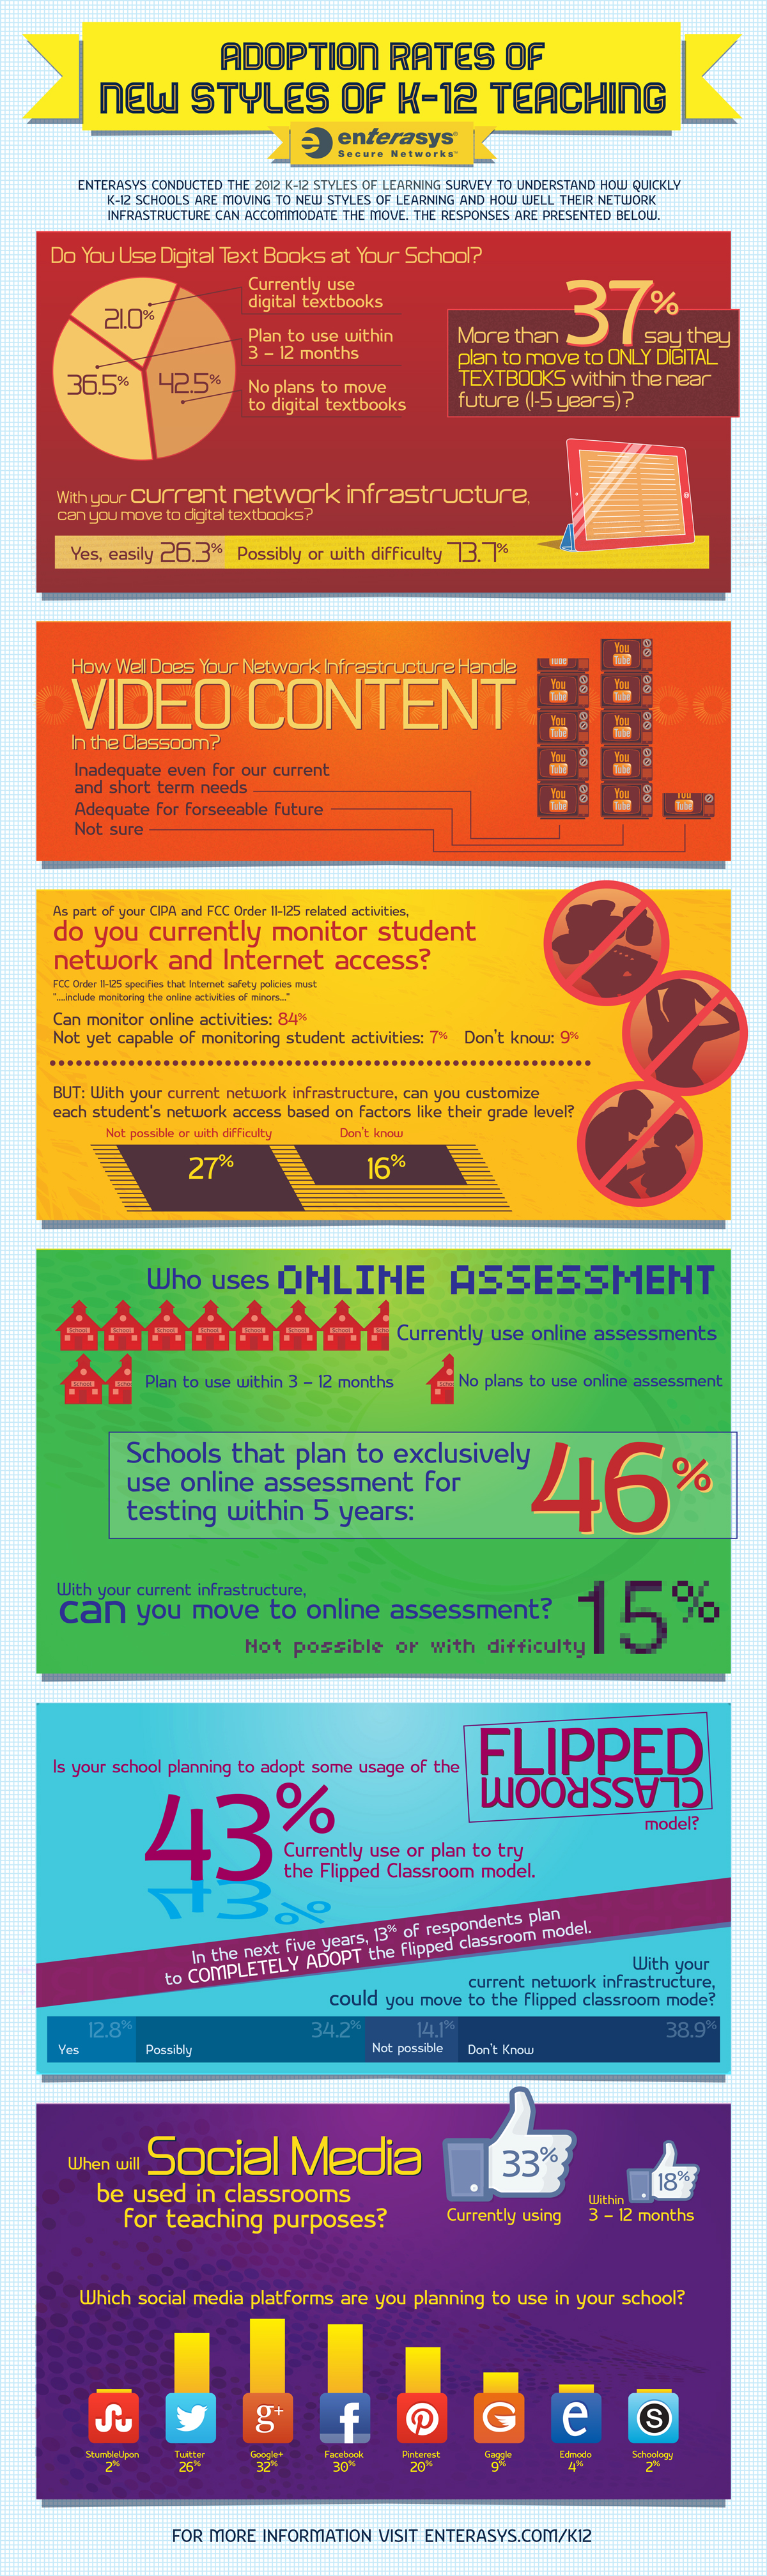 adoption-rates-of-new-styles-of-k12-teaching_50c73acbe3a47